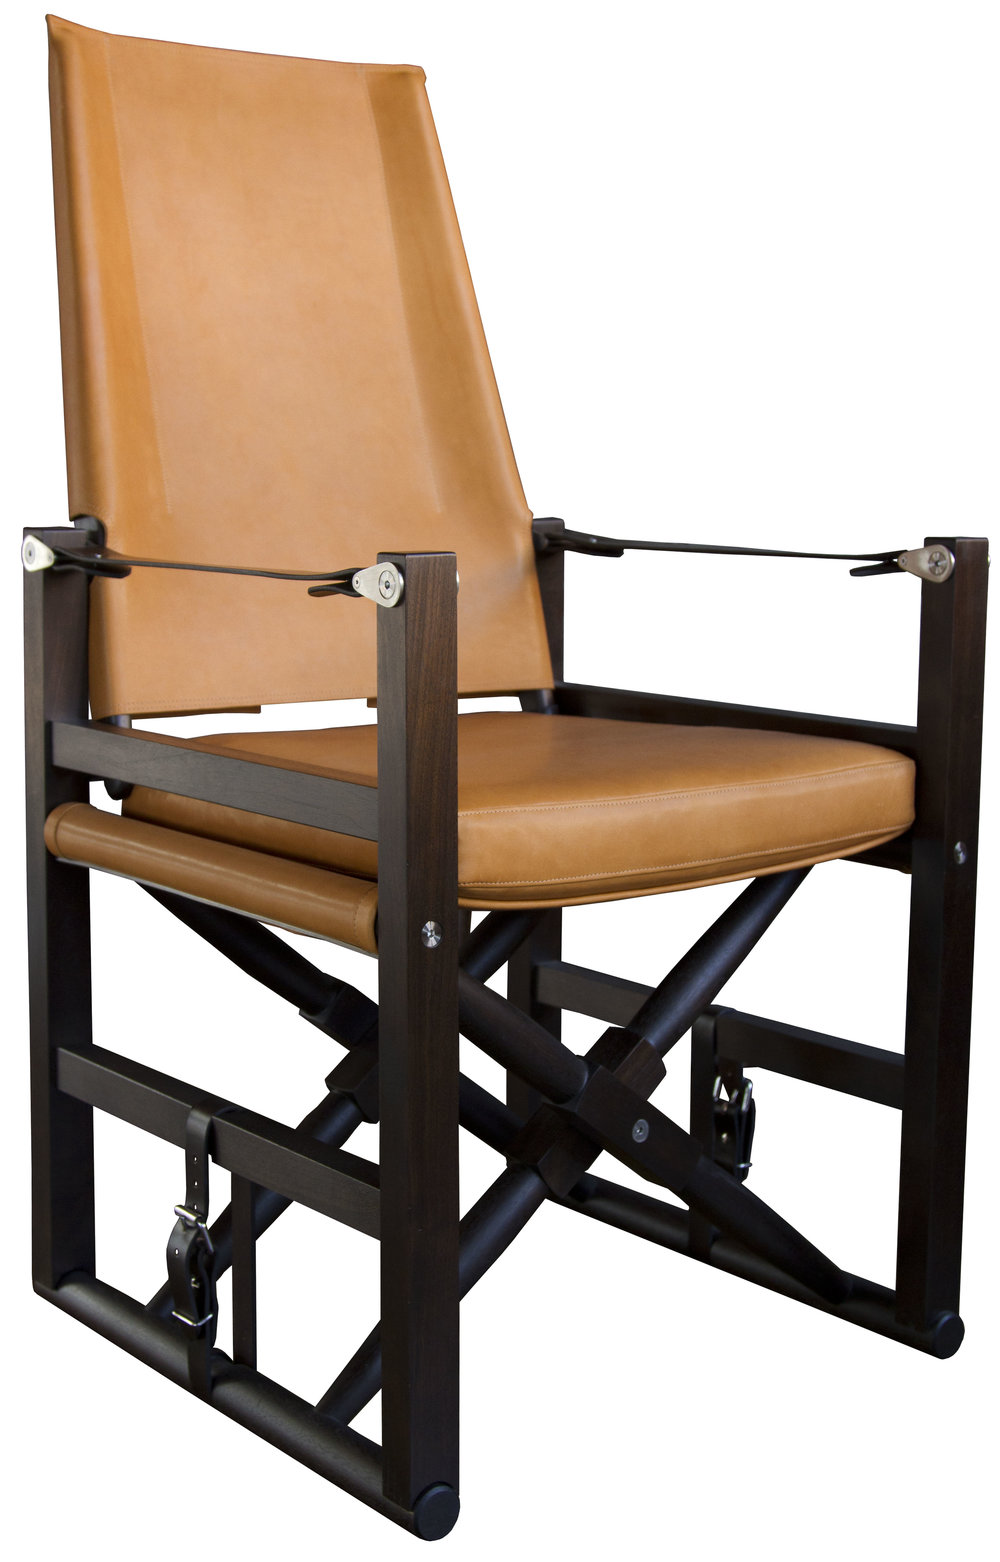 High-Back Cabourn Folding Chair